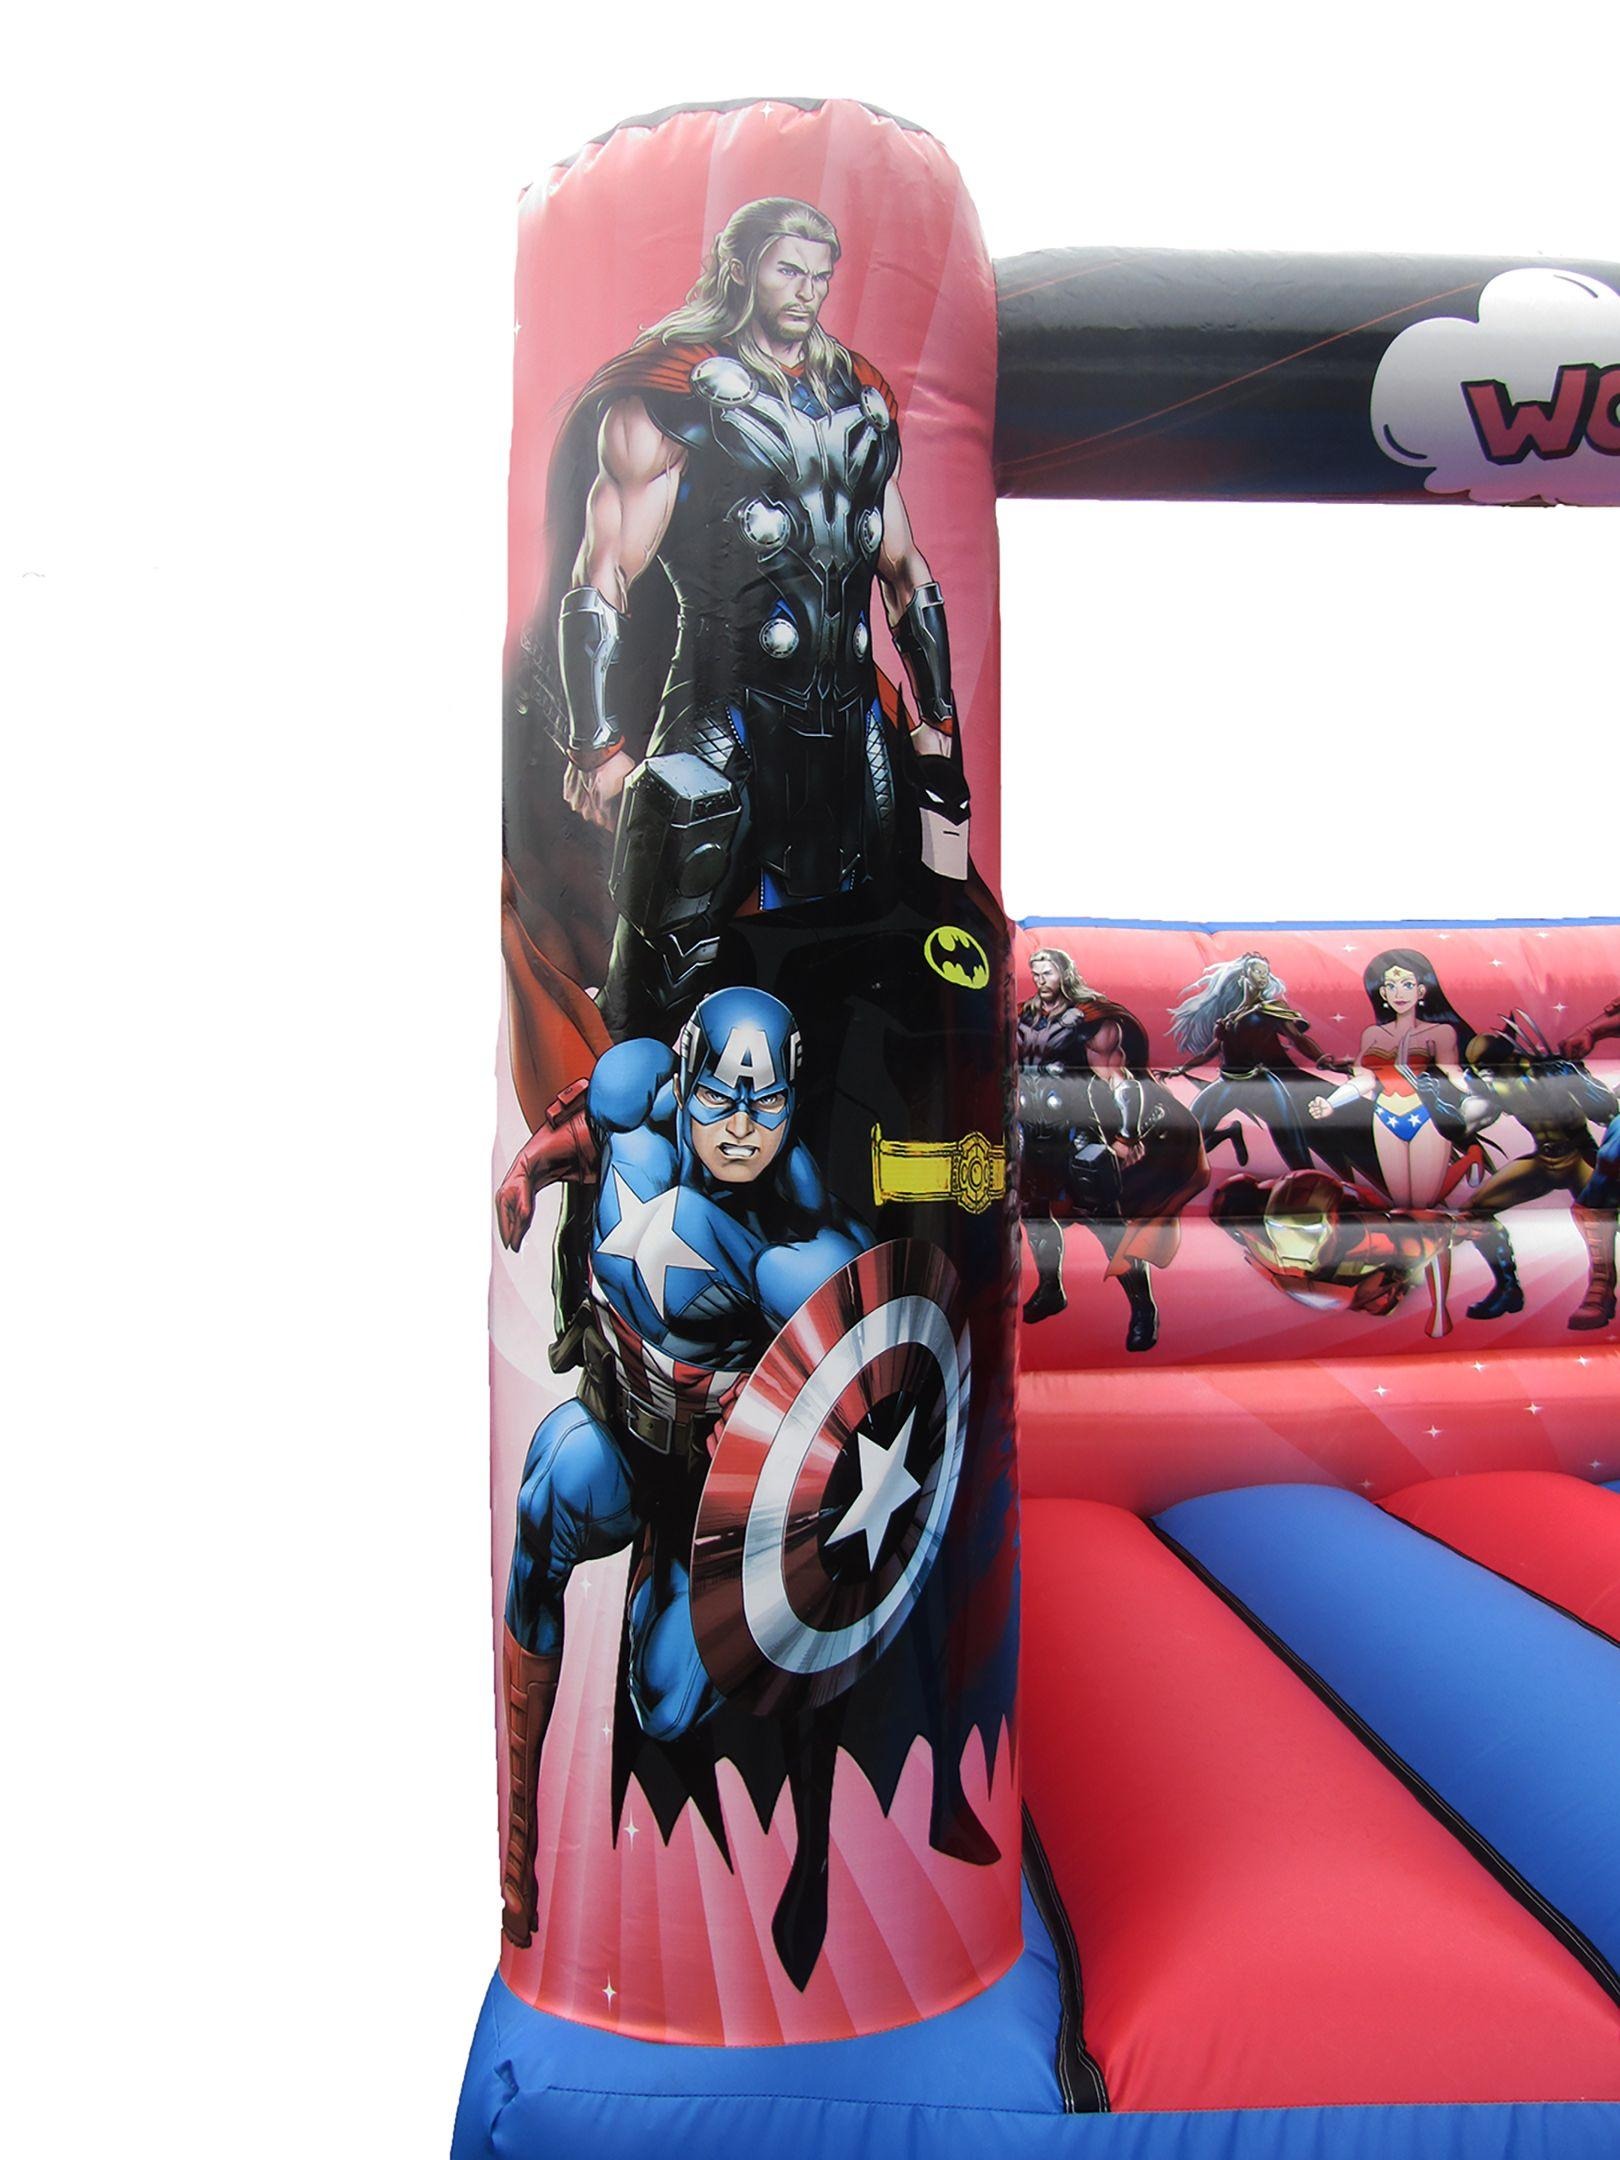 Digitally Printed Bouncy Castle Artwork